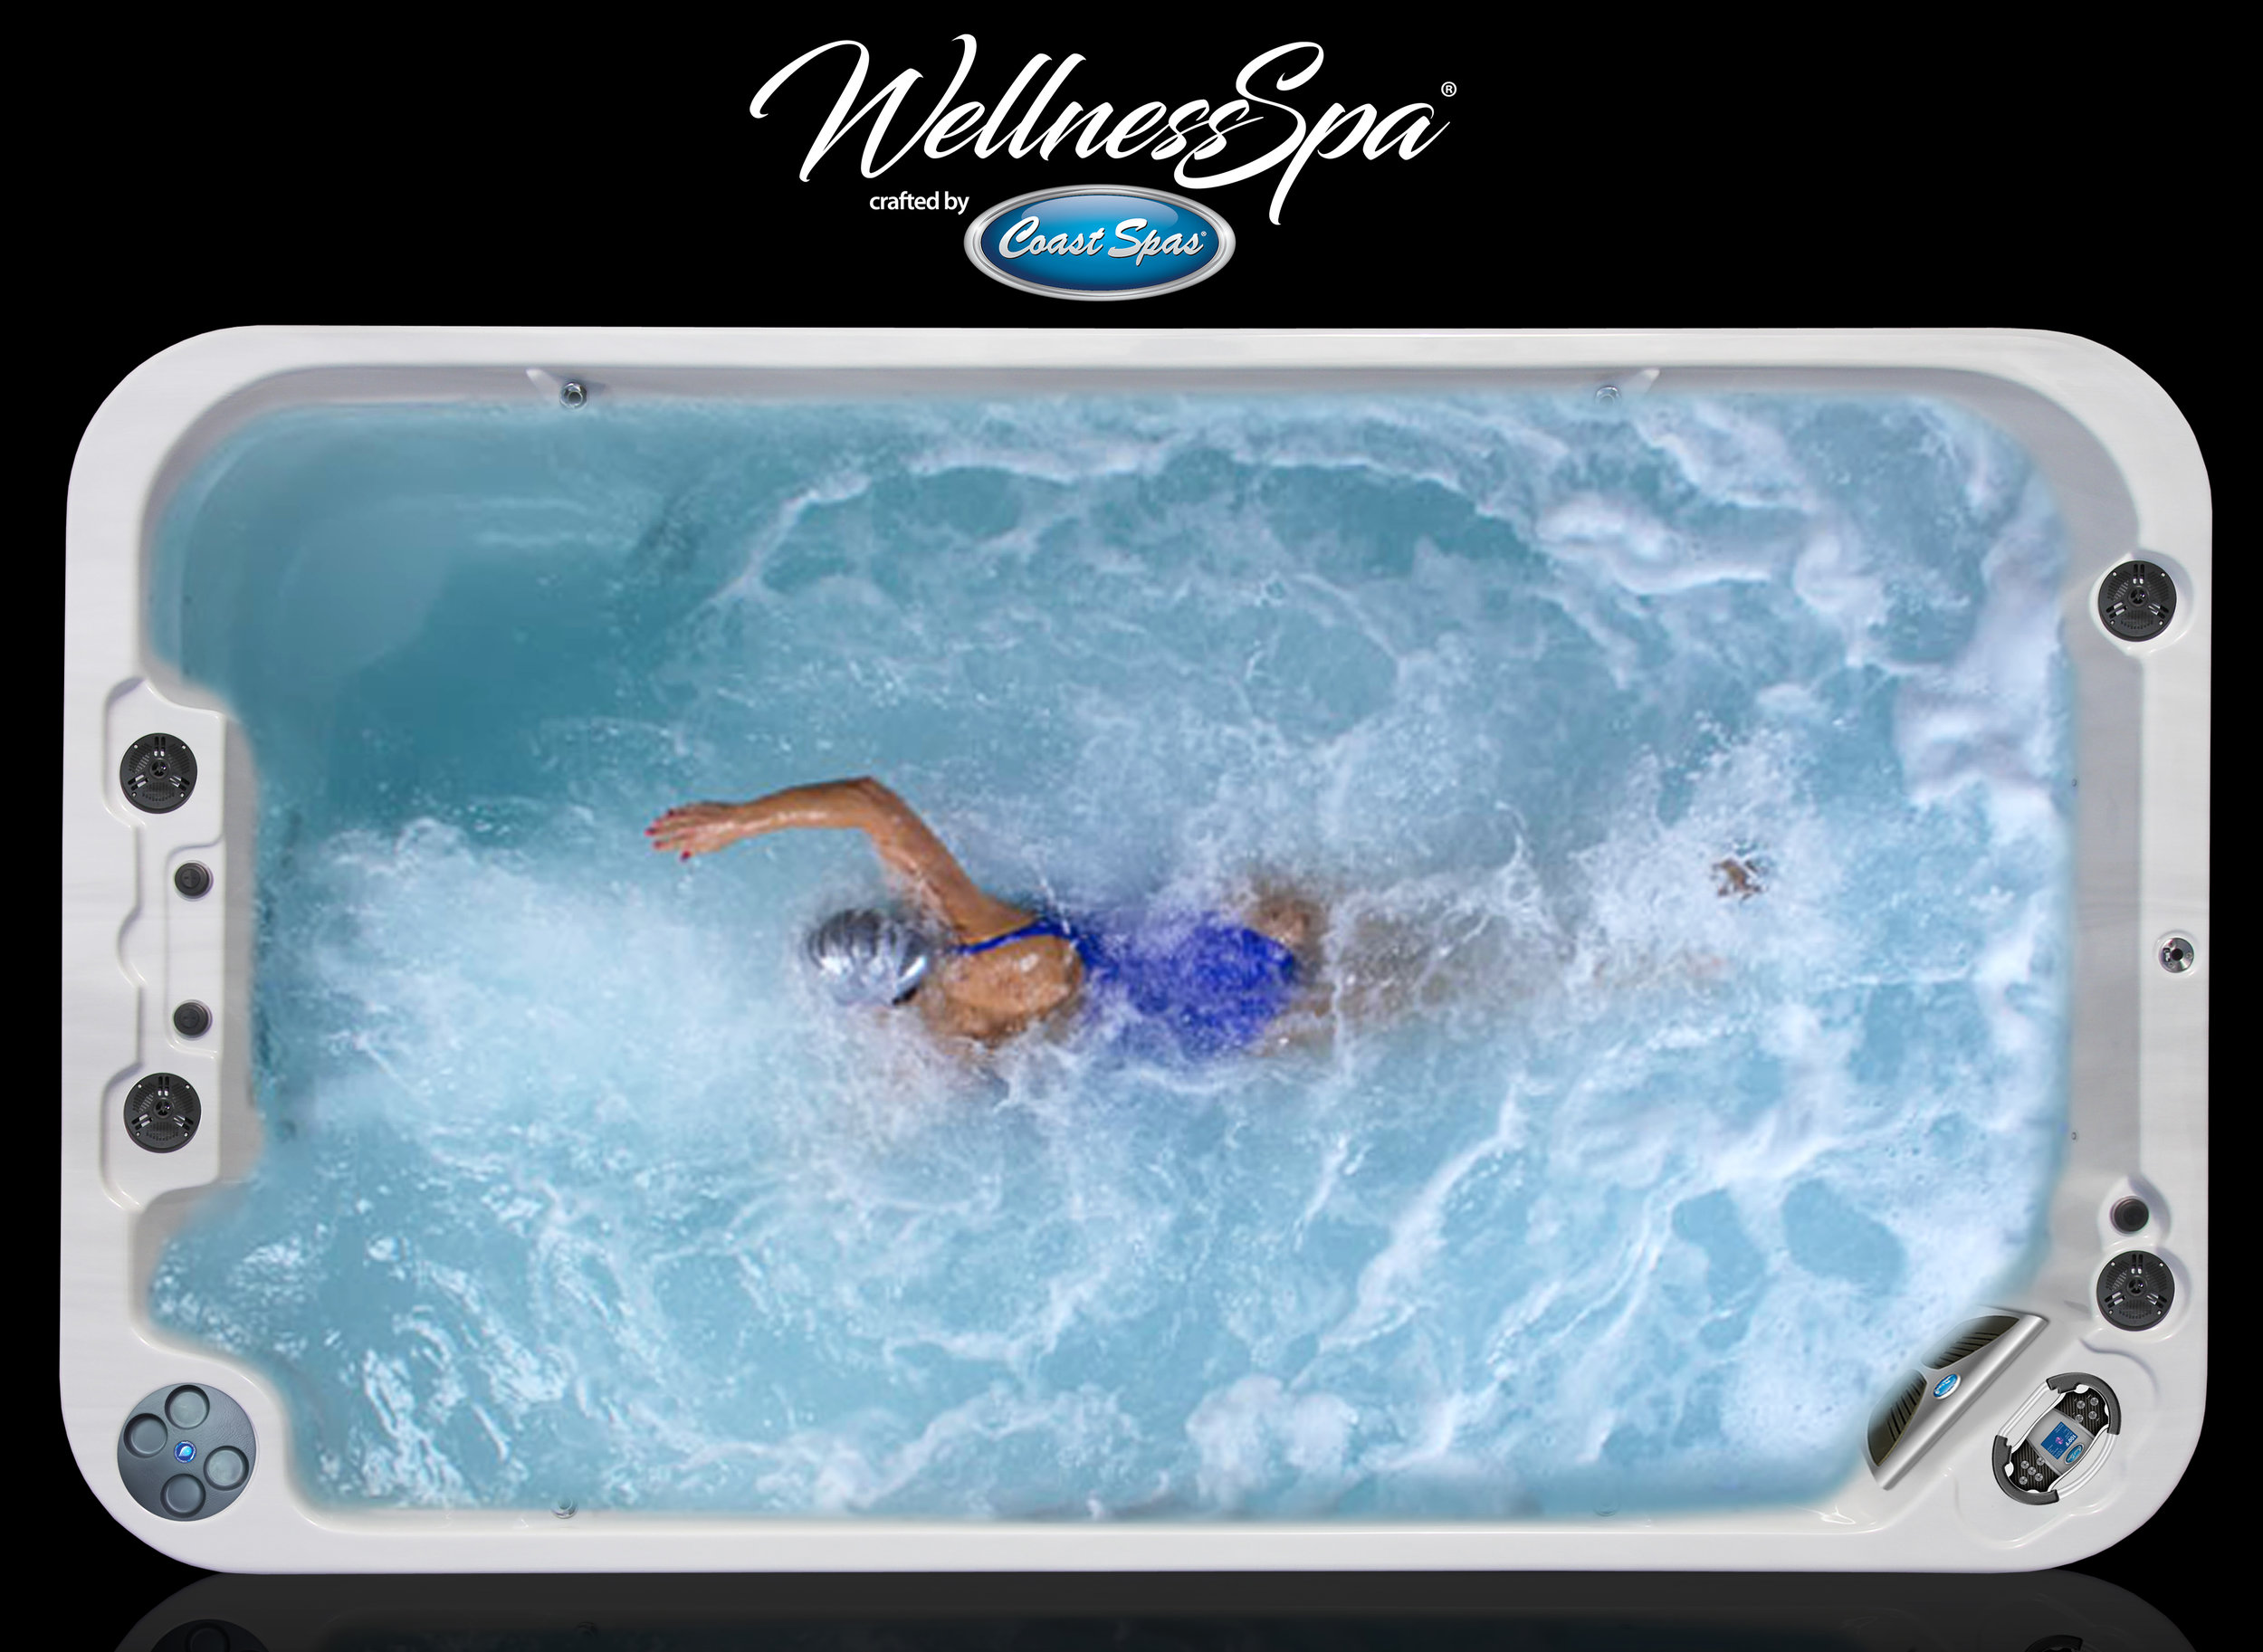 Swimming-Wellness-SwimSpa.jpg